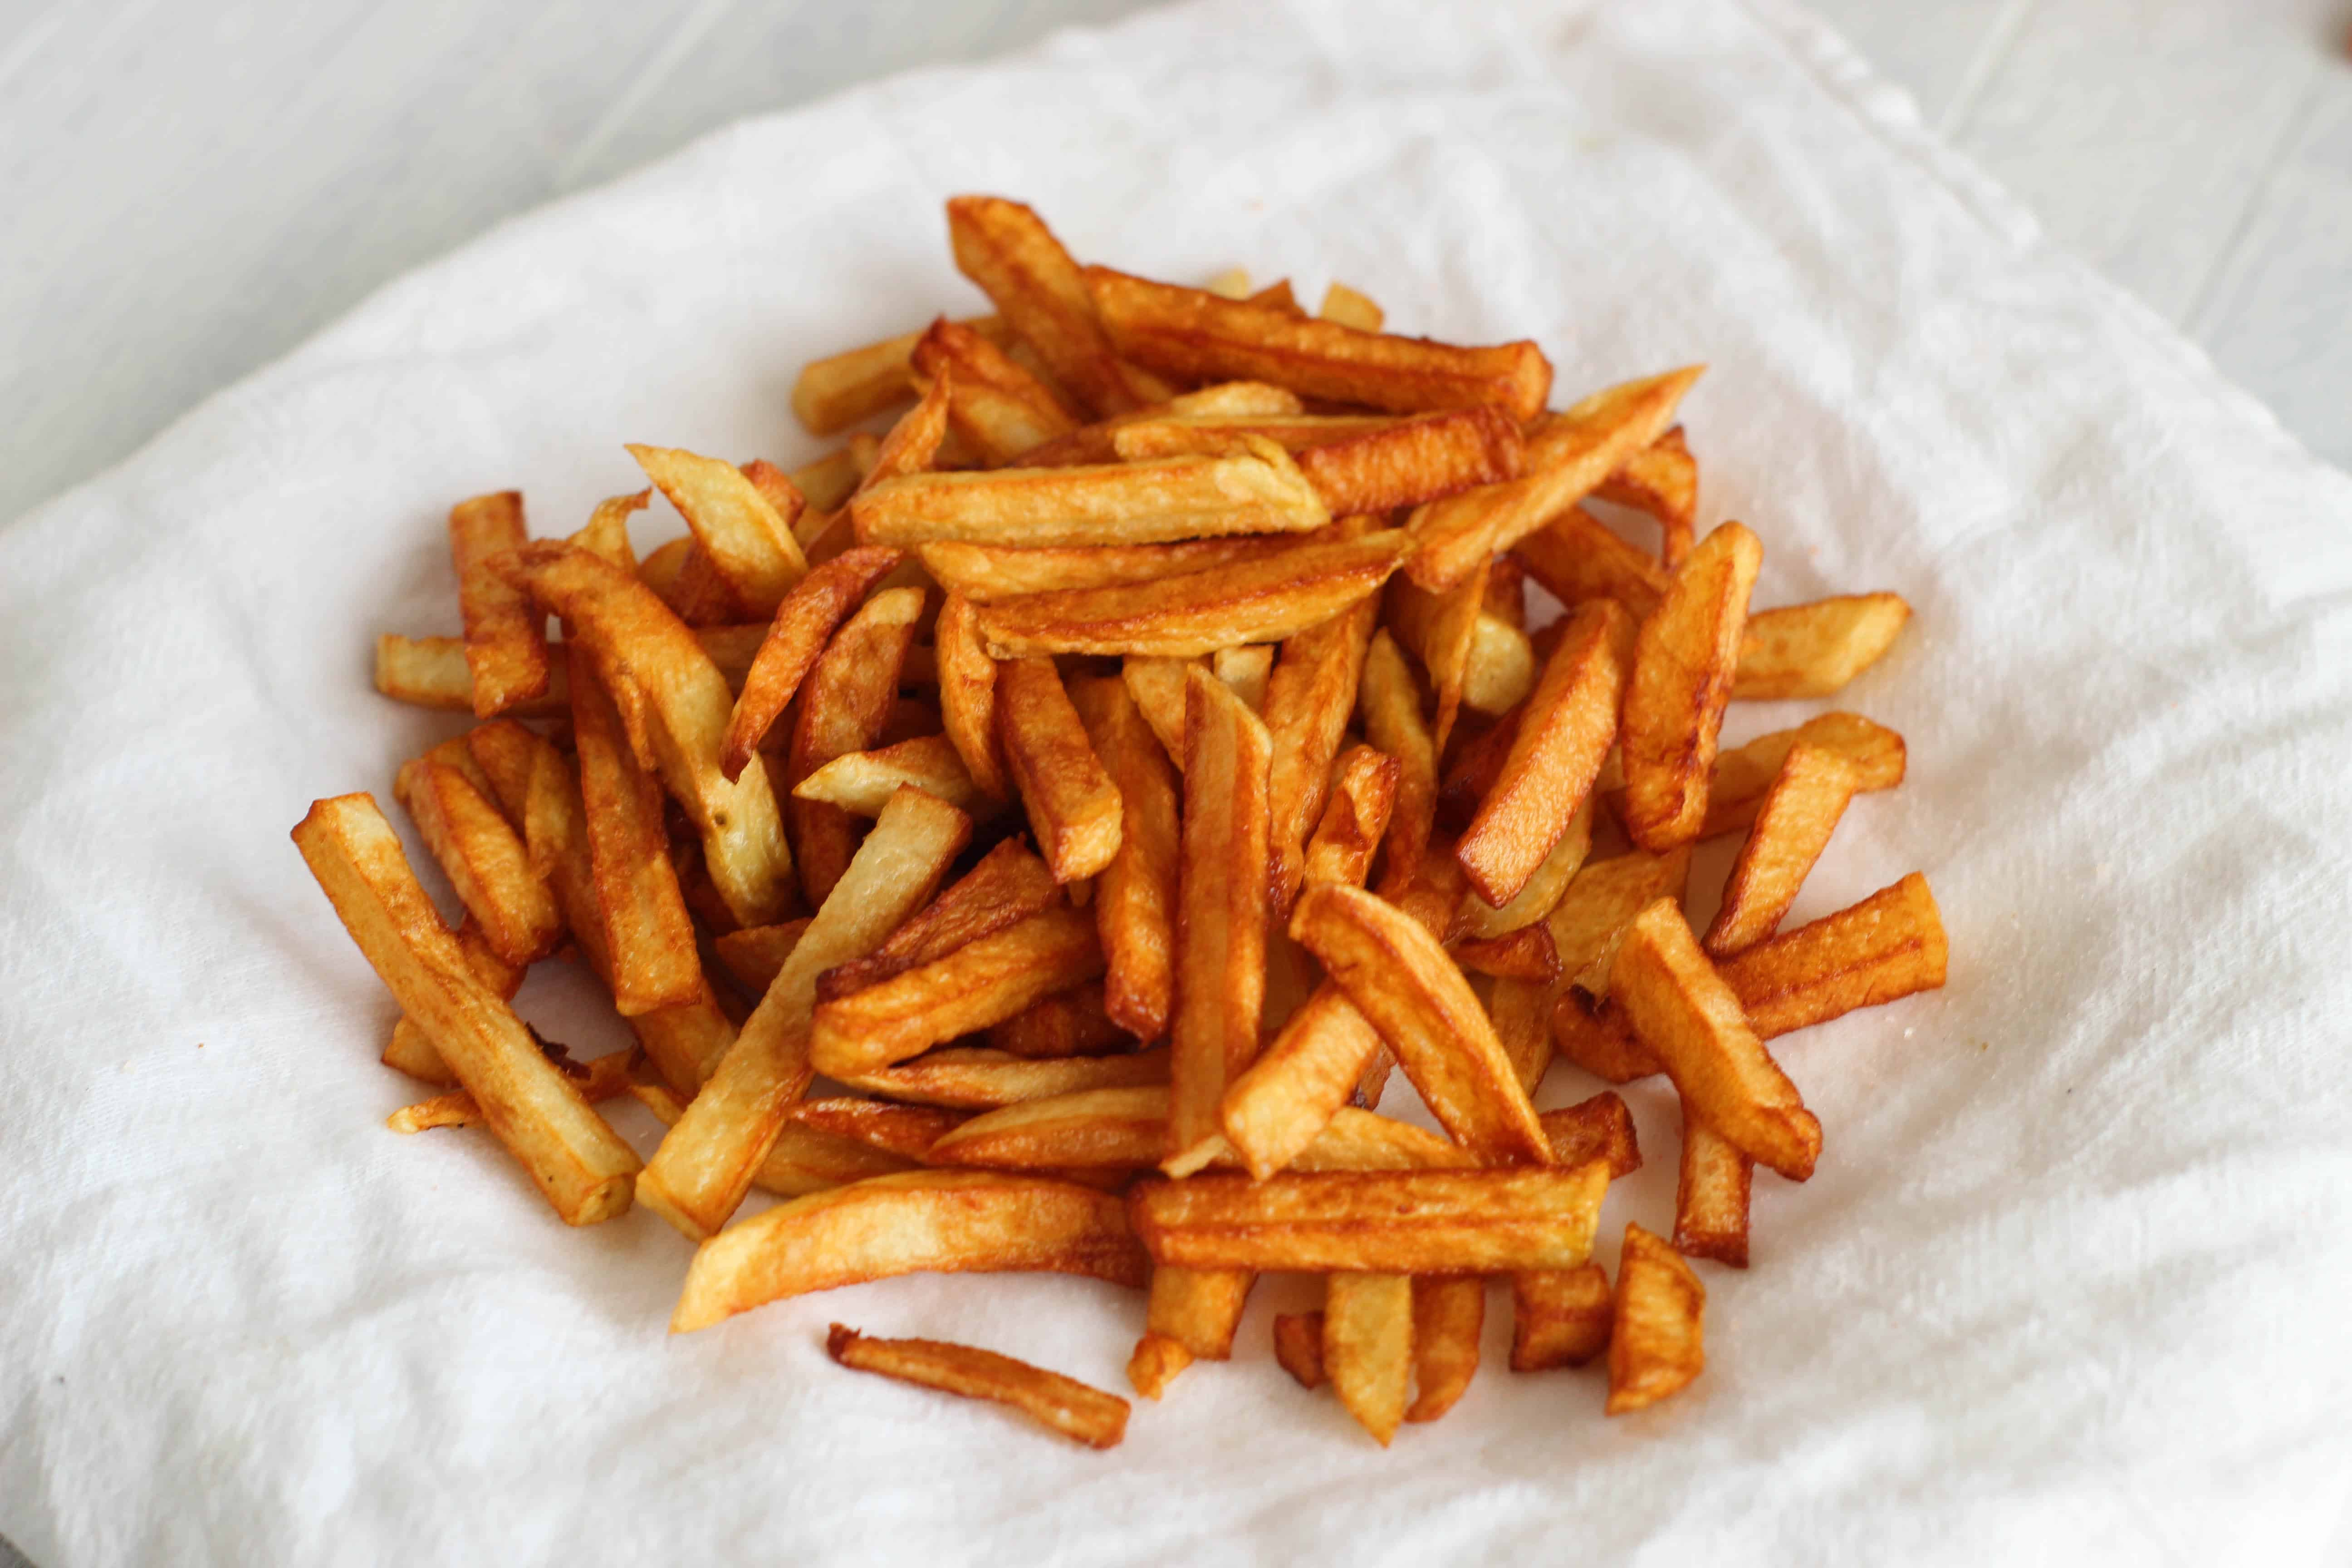 beef tallow uses fries